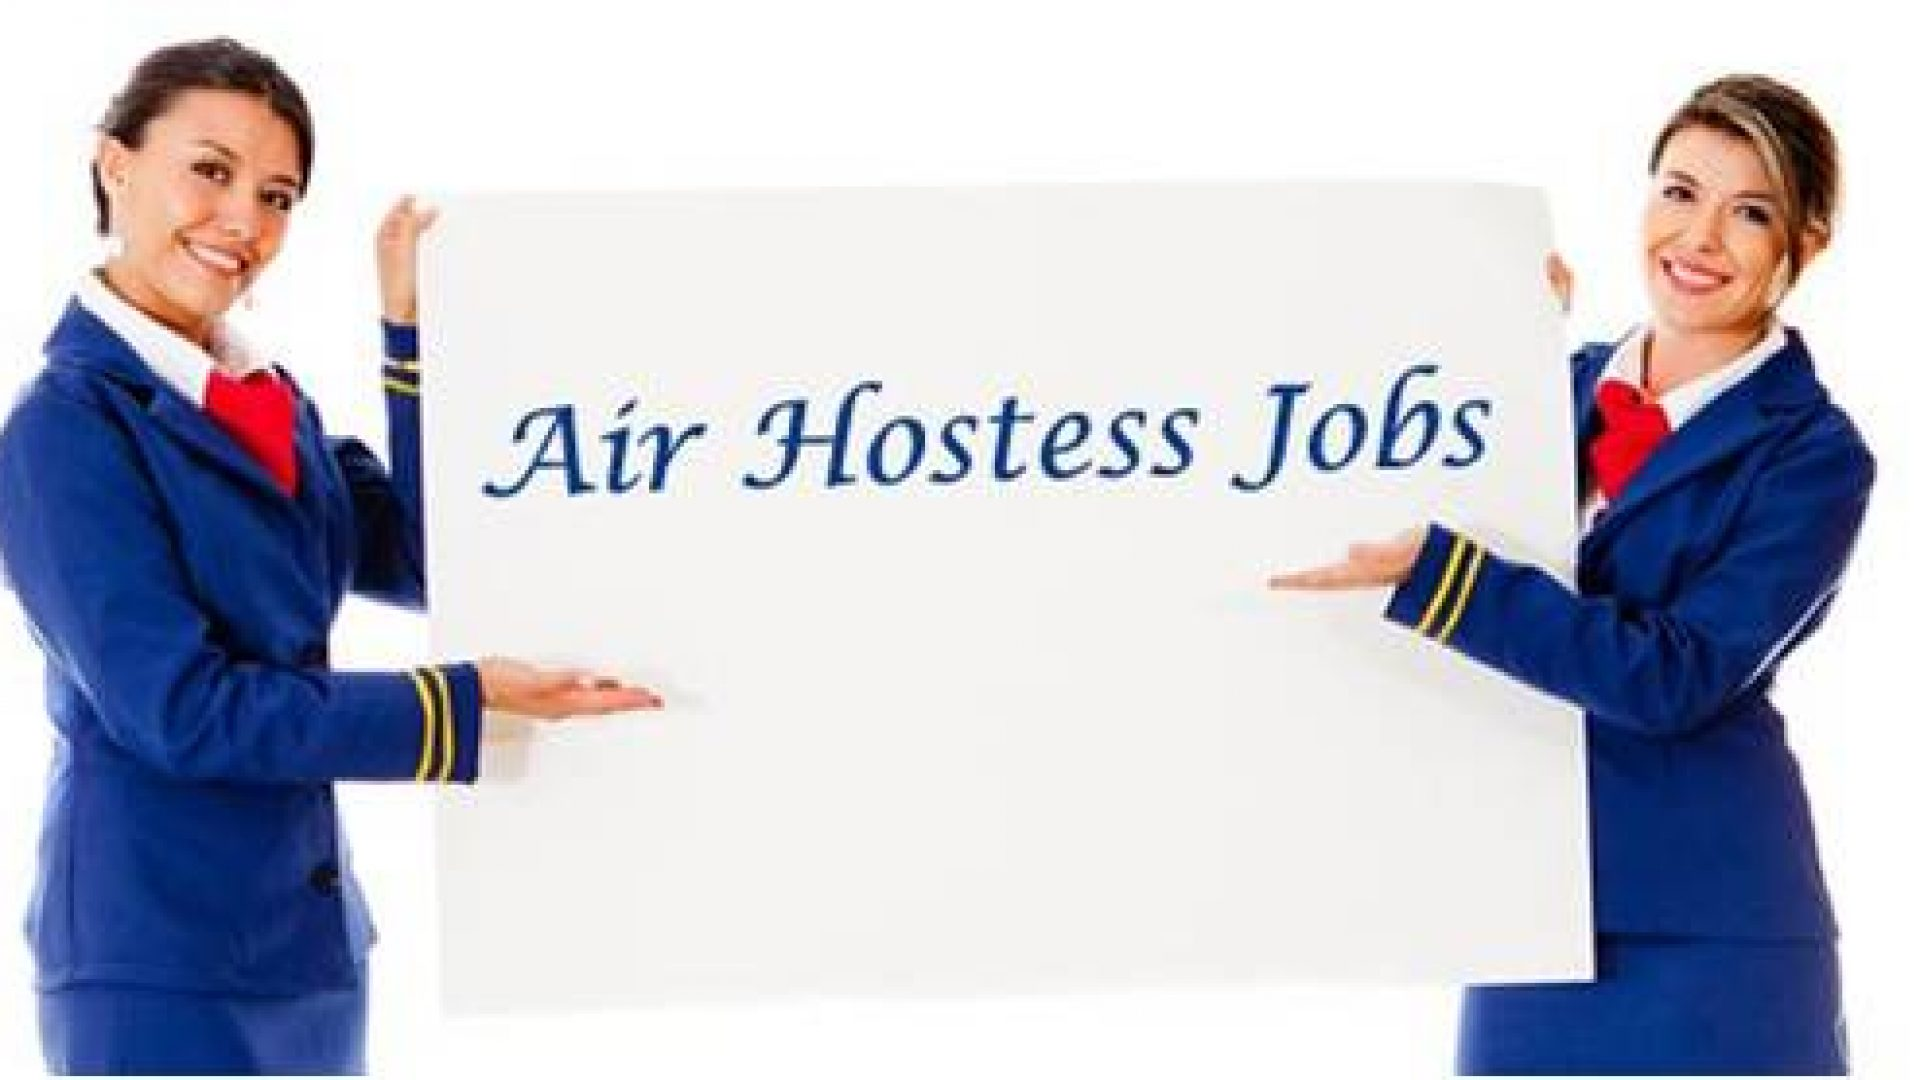 Air hostess jobs